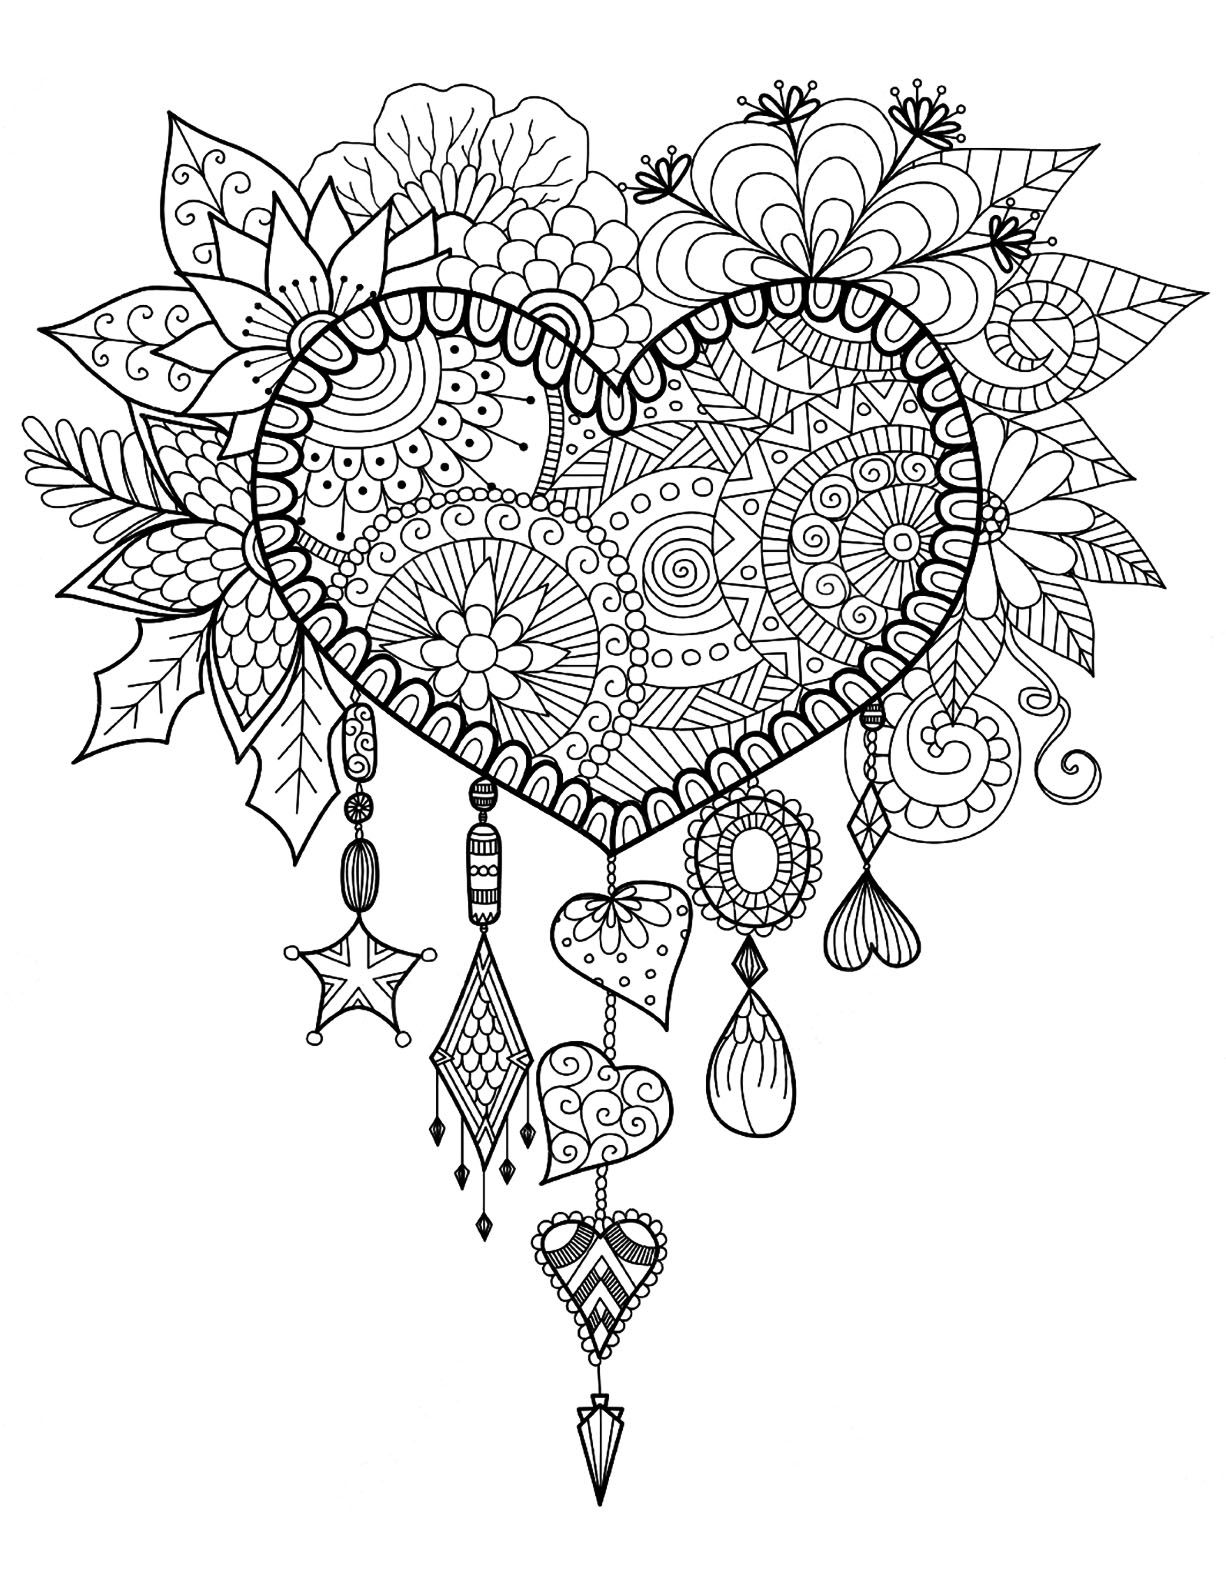 Dreamcatcher To Print And Color HeartFrom The Gallery Zen Anti Stress